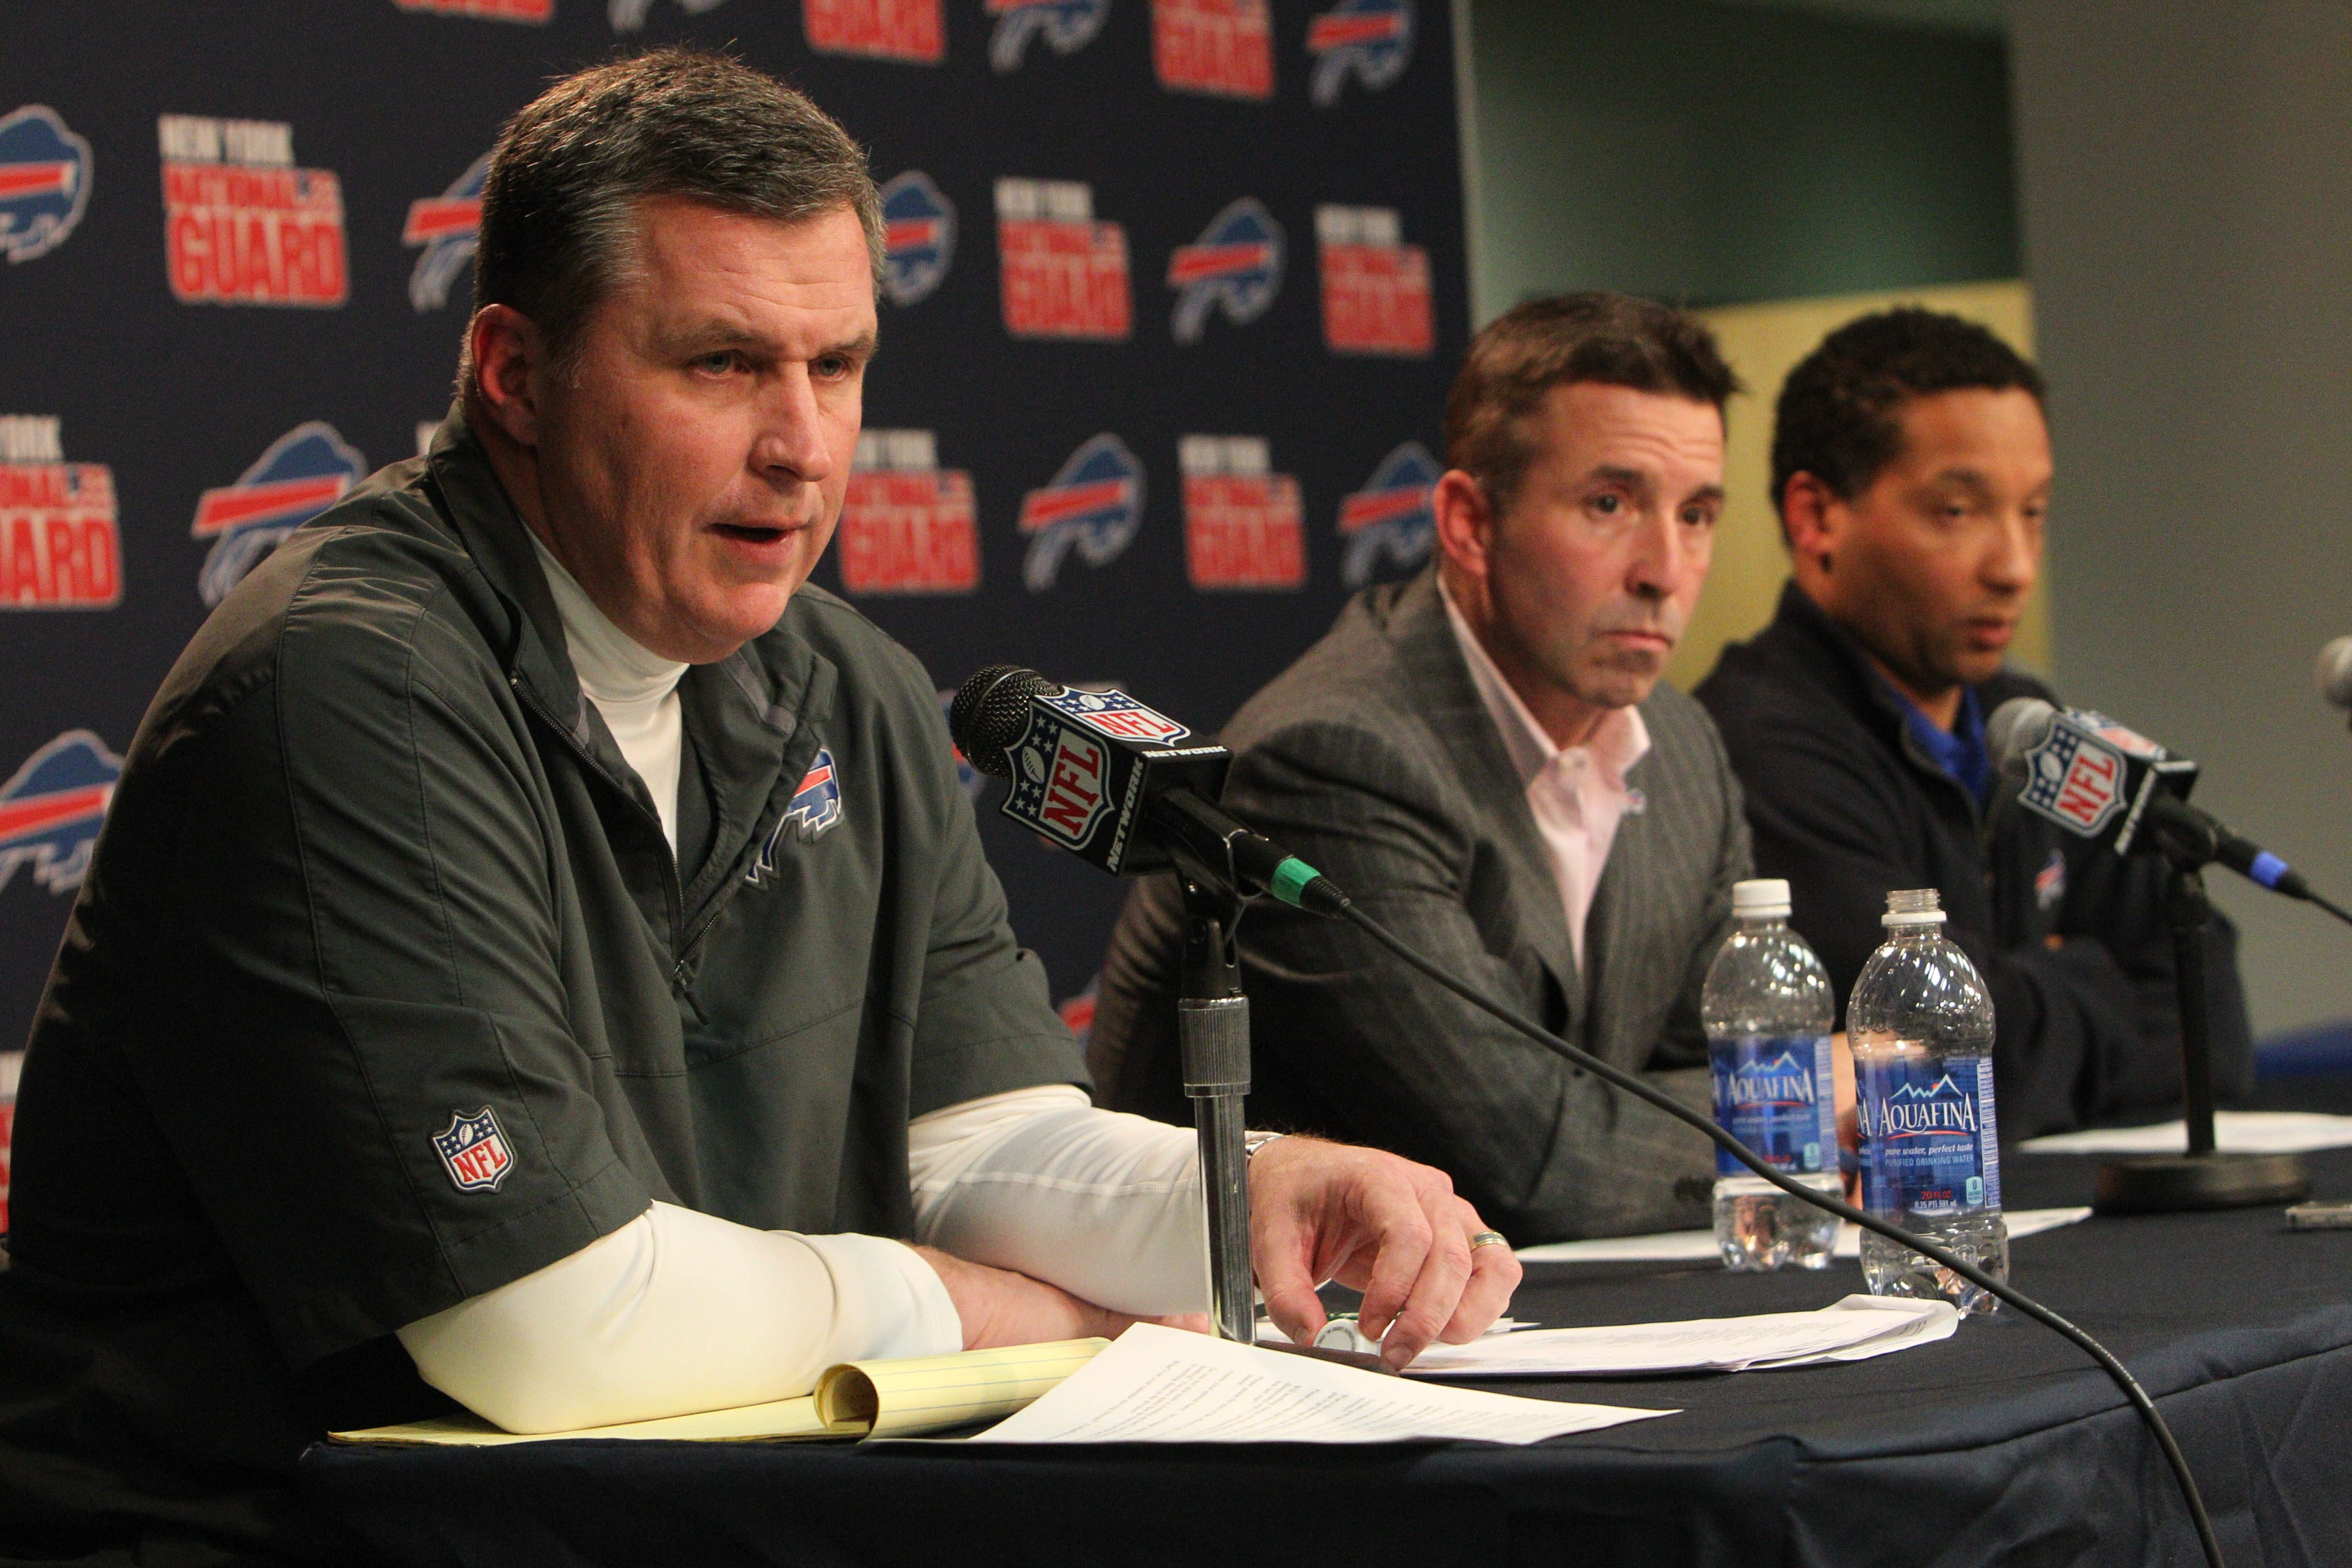 Bills coach Doug Marrone, left, appears at a news conference Monday with Bills President and CEO Russ Brandon, center, and General Manager Doug Whaley.